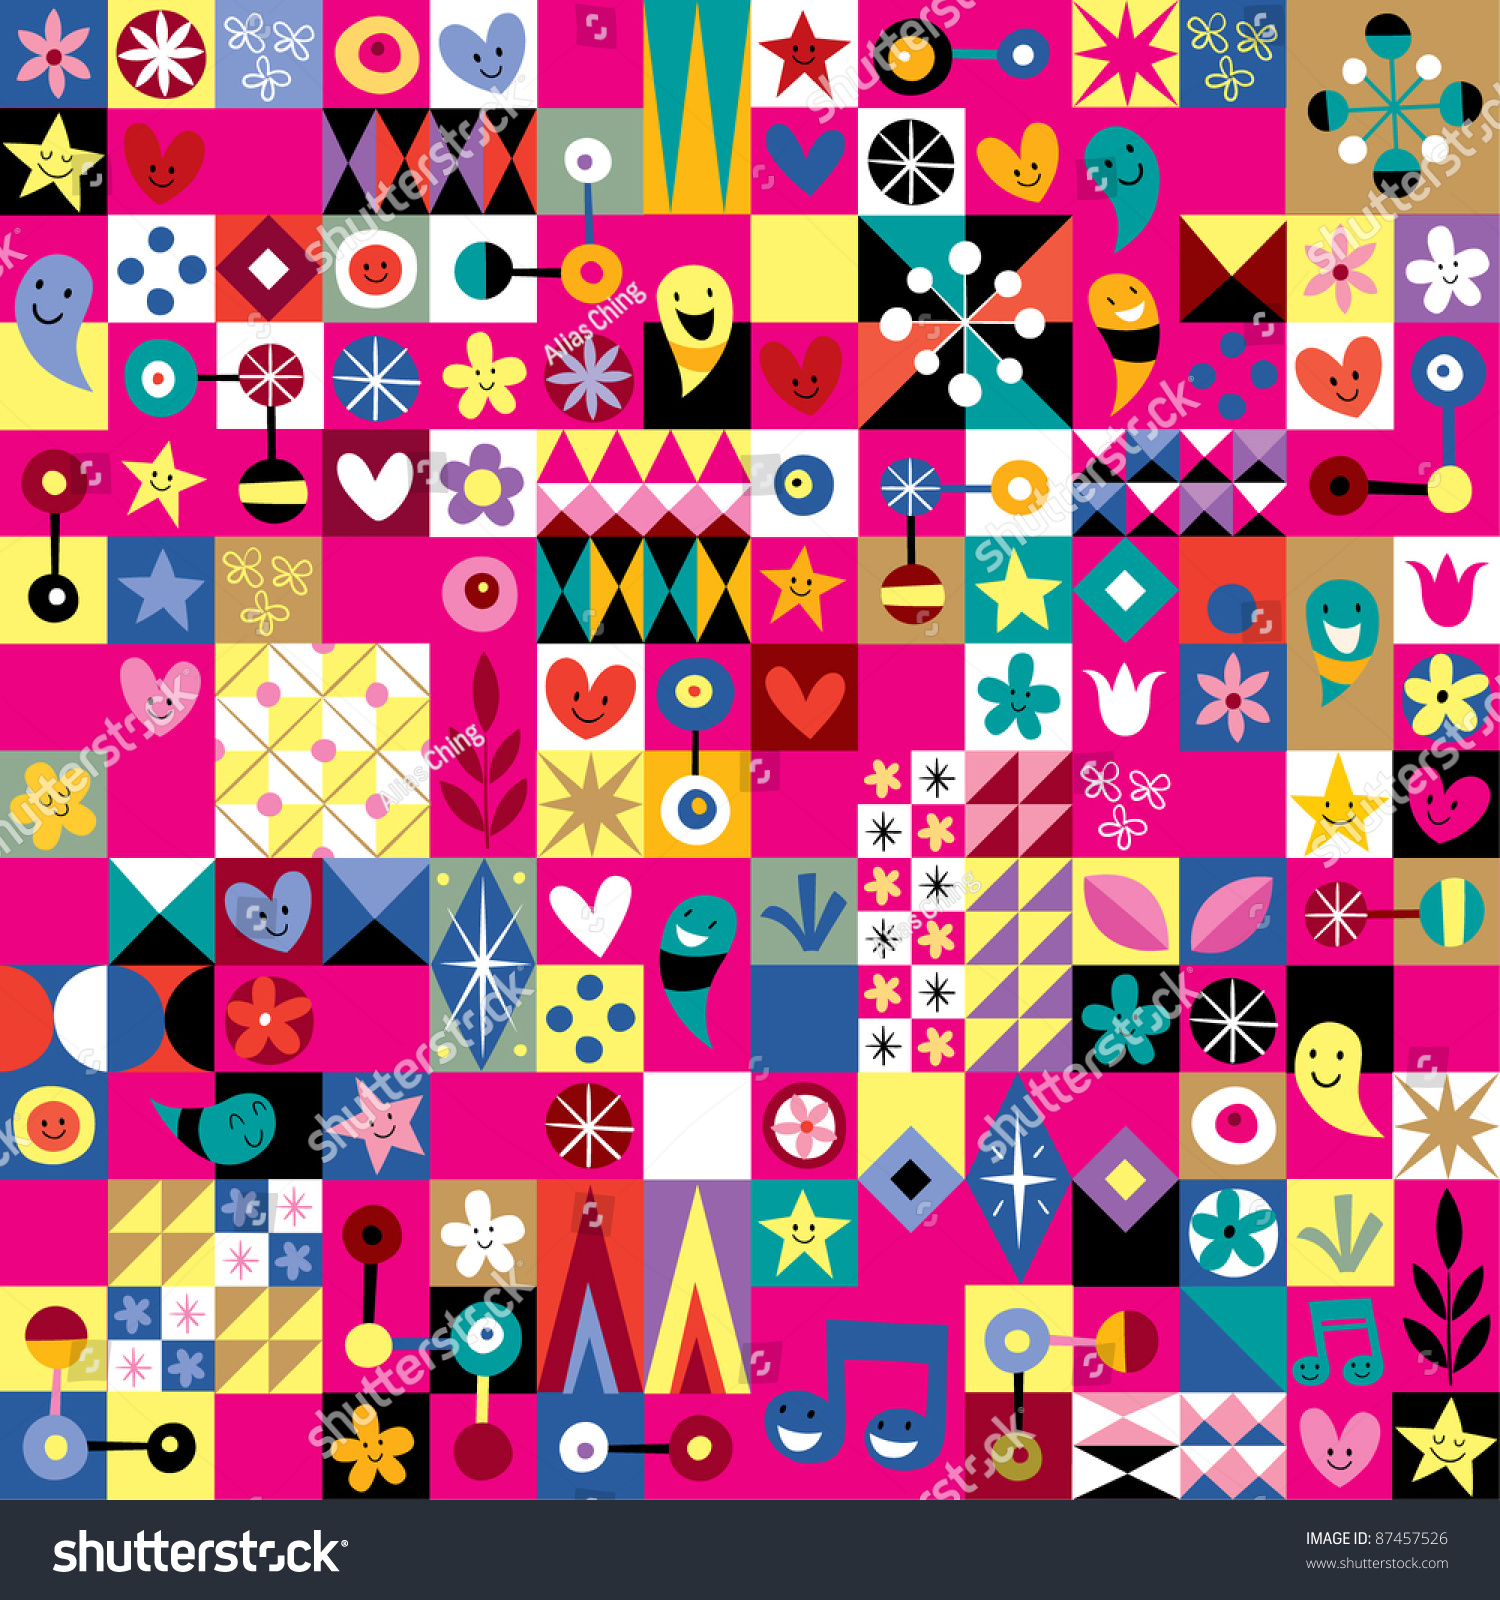 Cute hearts stars and flowers abstract art pattern stock for Cute abstract art